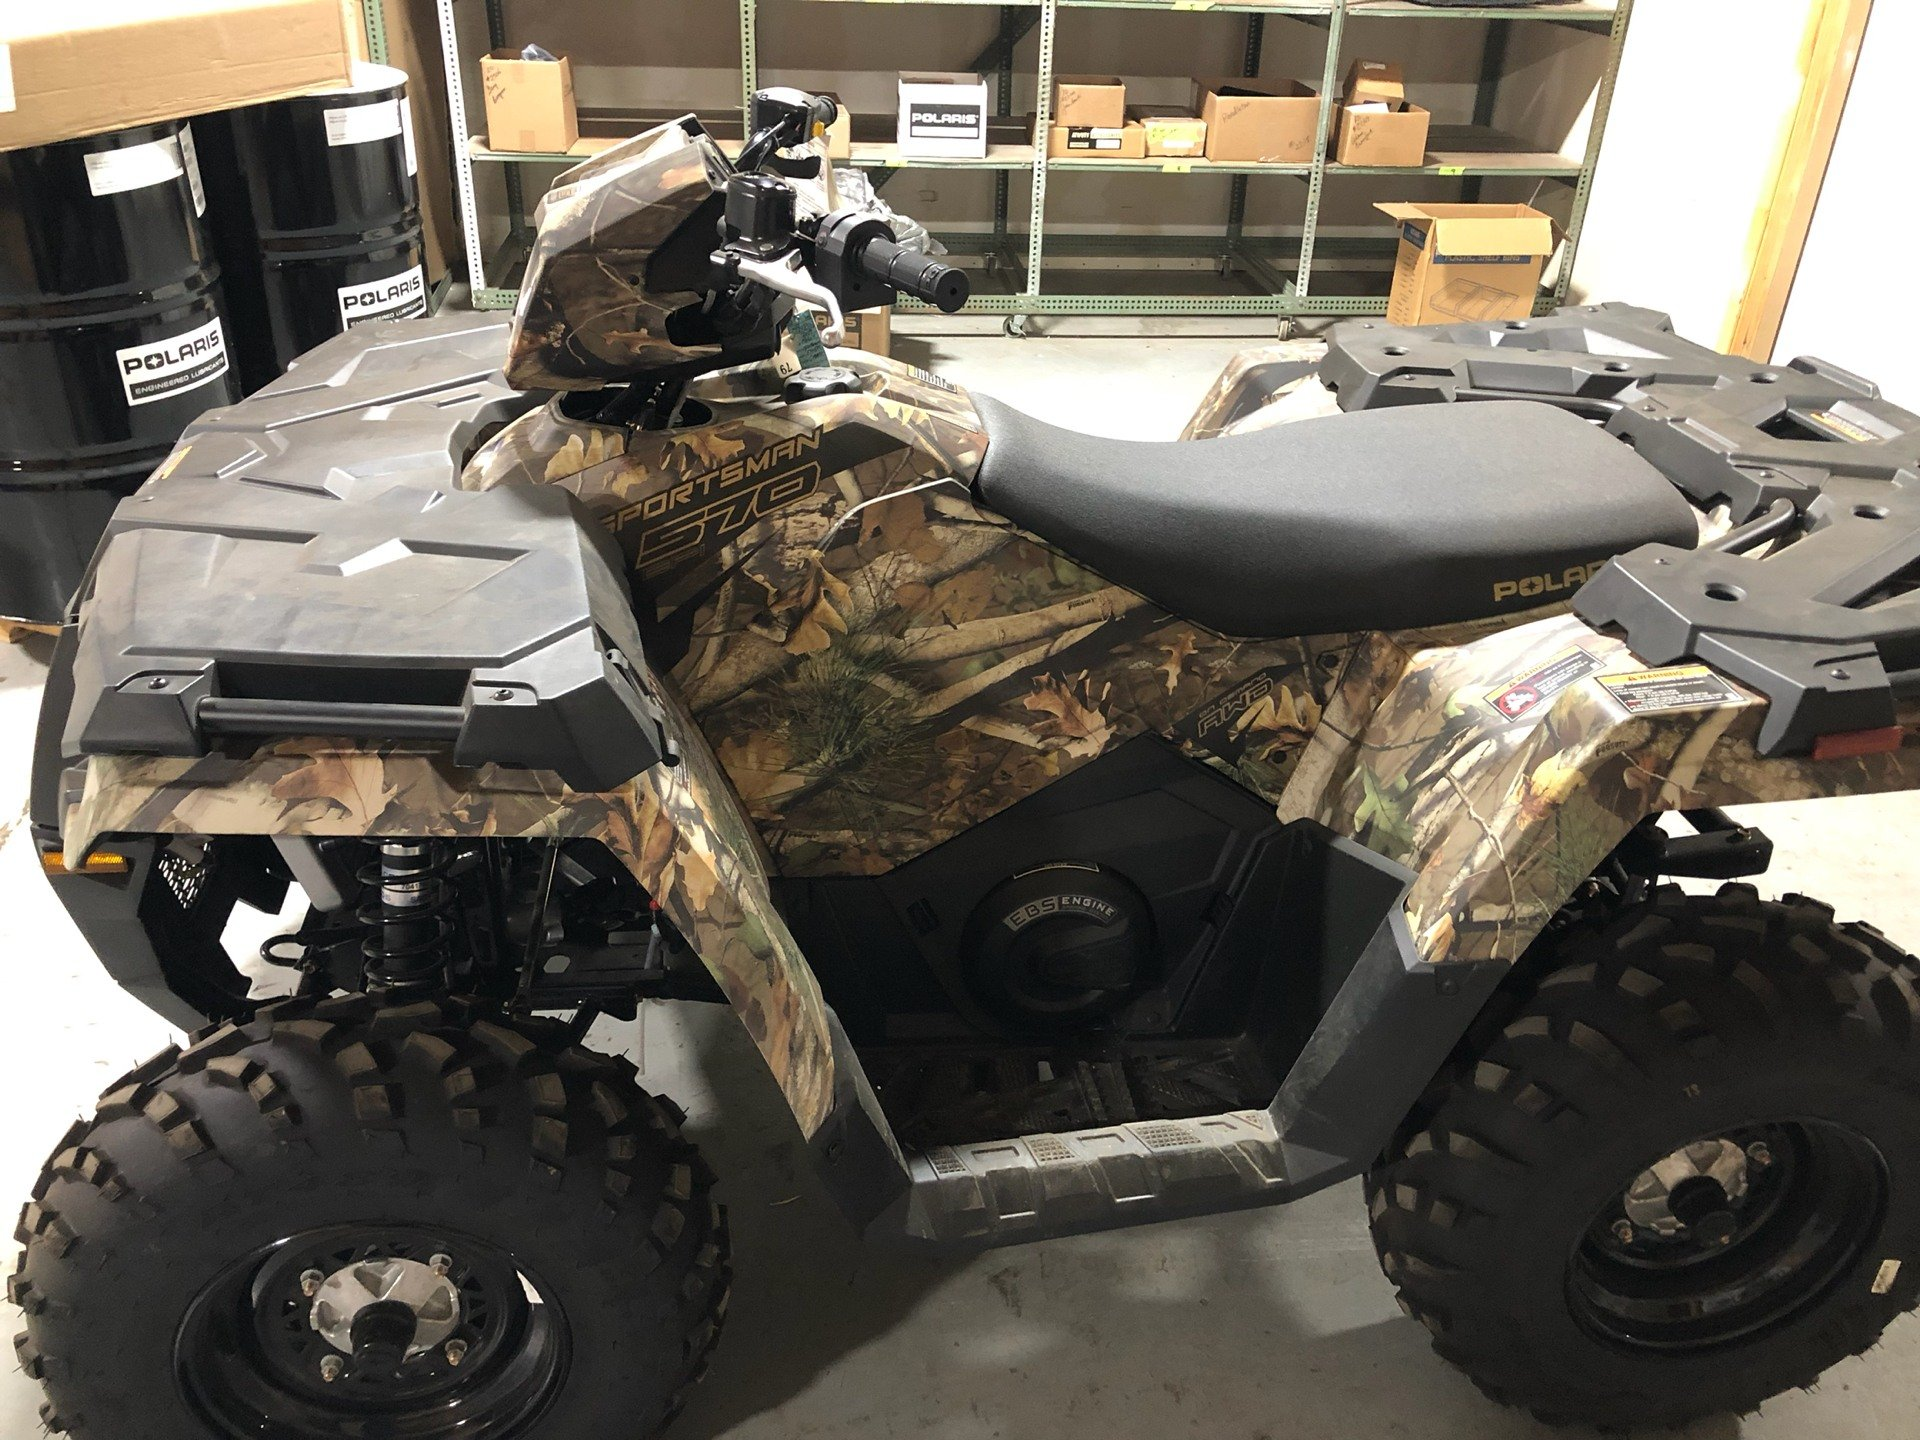 2019 Polaris Sportsman 570 EPS Camo in Cleveland, Texas - Photo 3